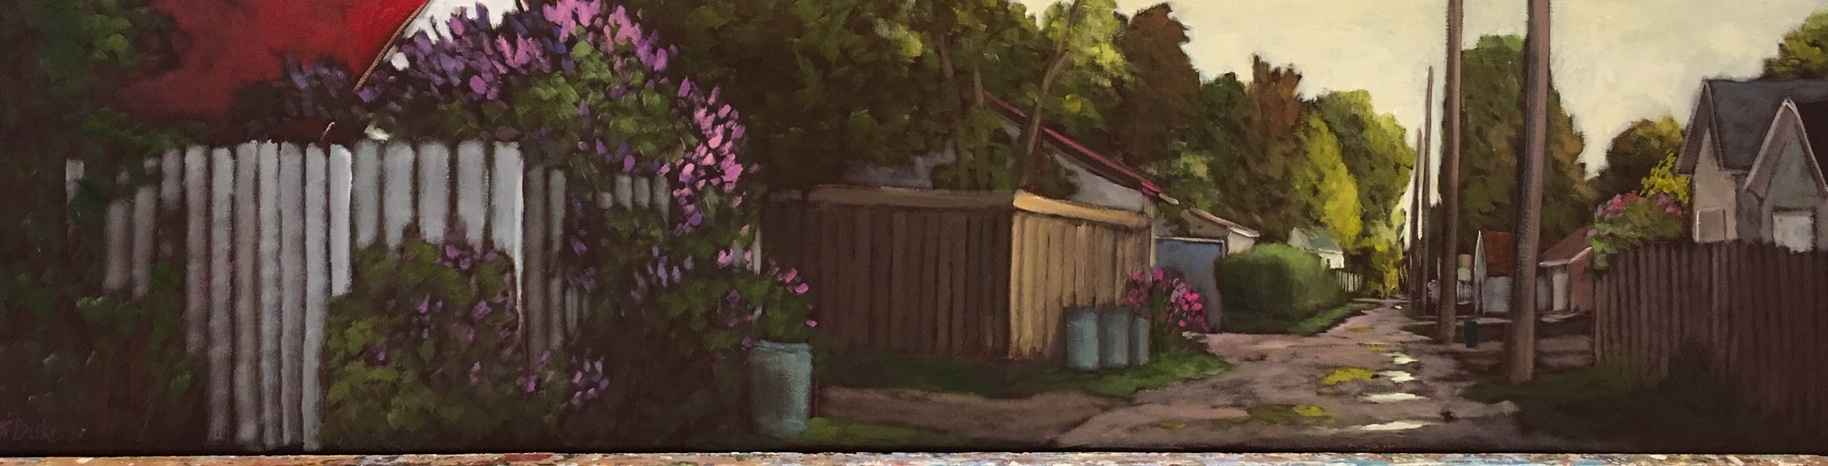 Quiet Spring Walk by  Kari Duke - Masterpiece Online